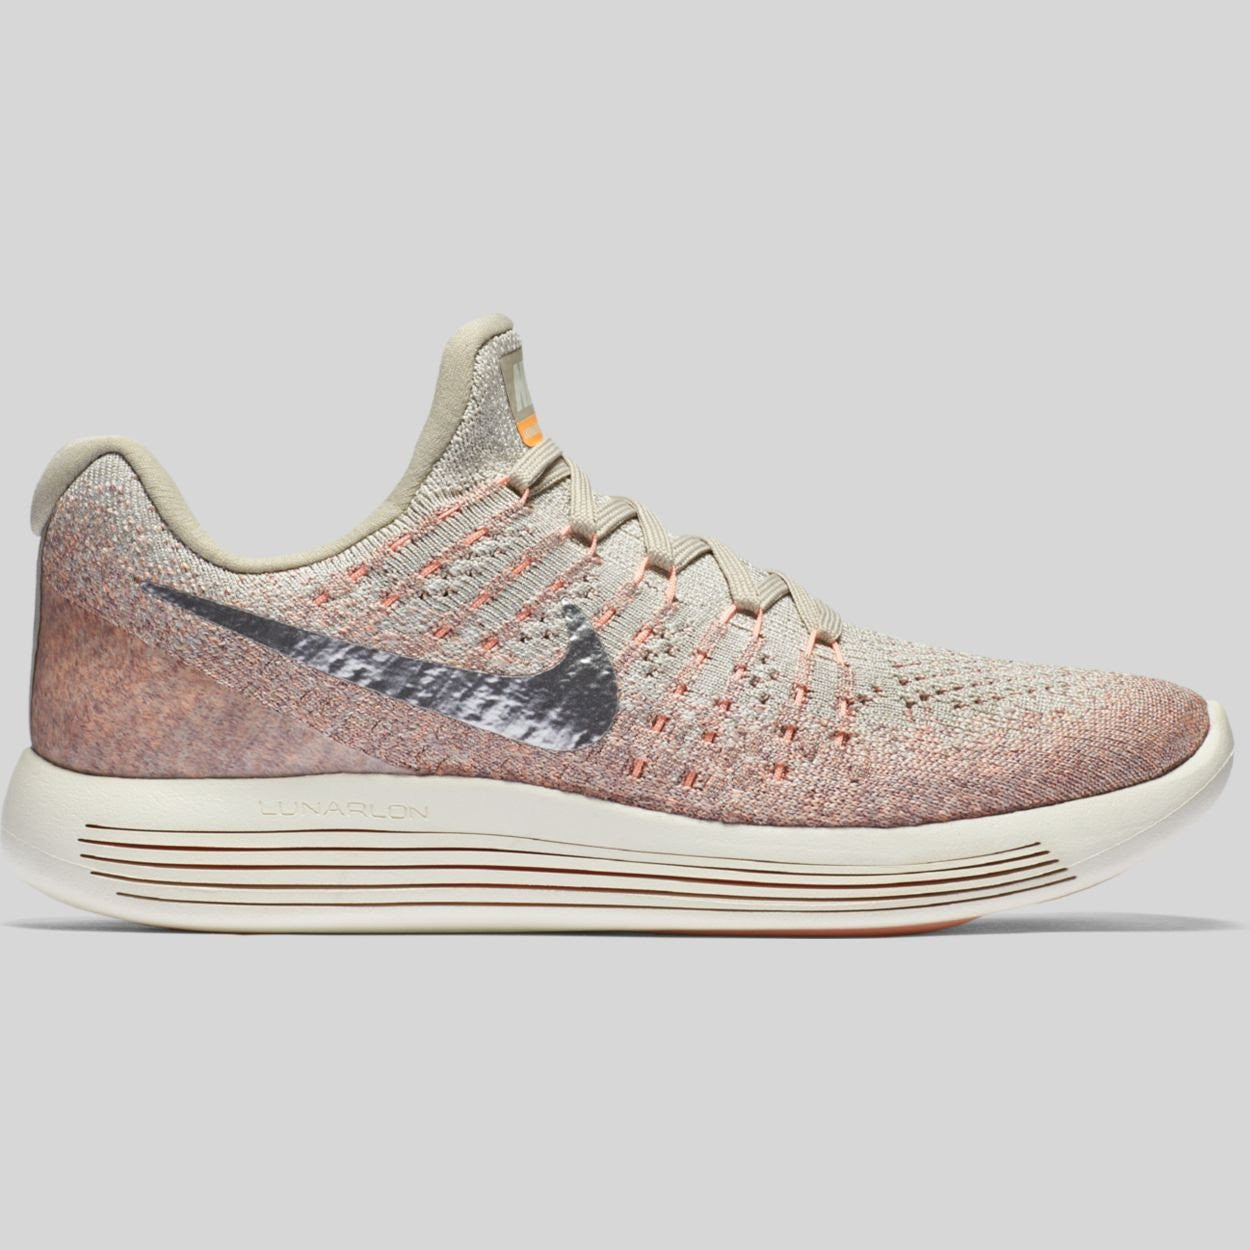 Nike LunarEpic Low Flyknit 2 Running Grey/Metallic Silver/Sunset Glow 863780 005